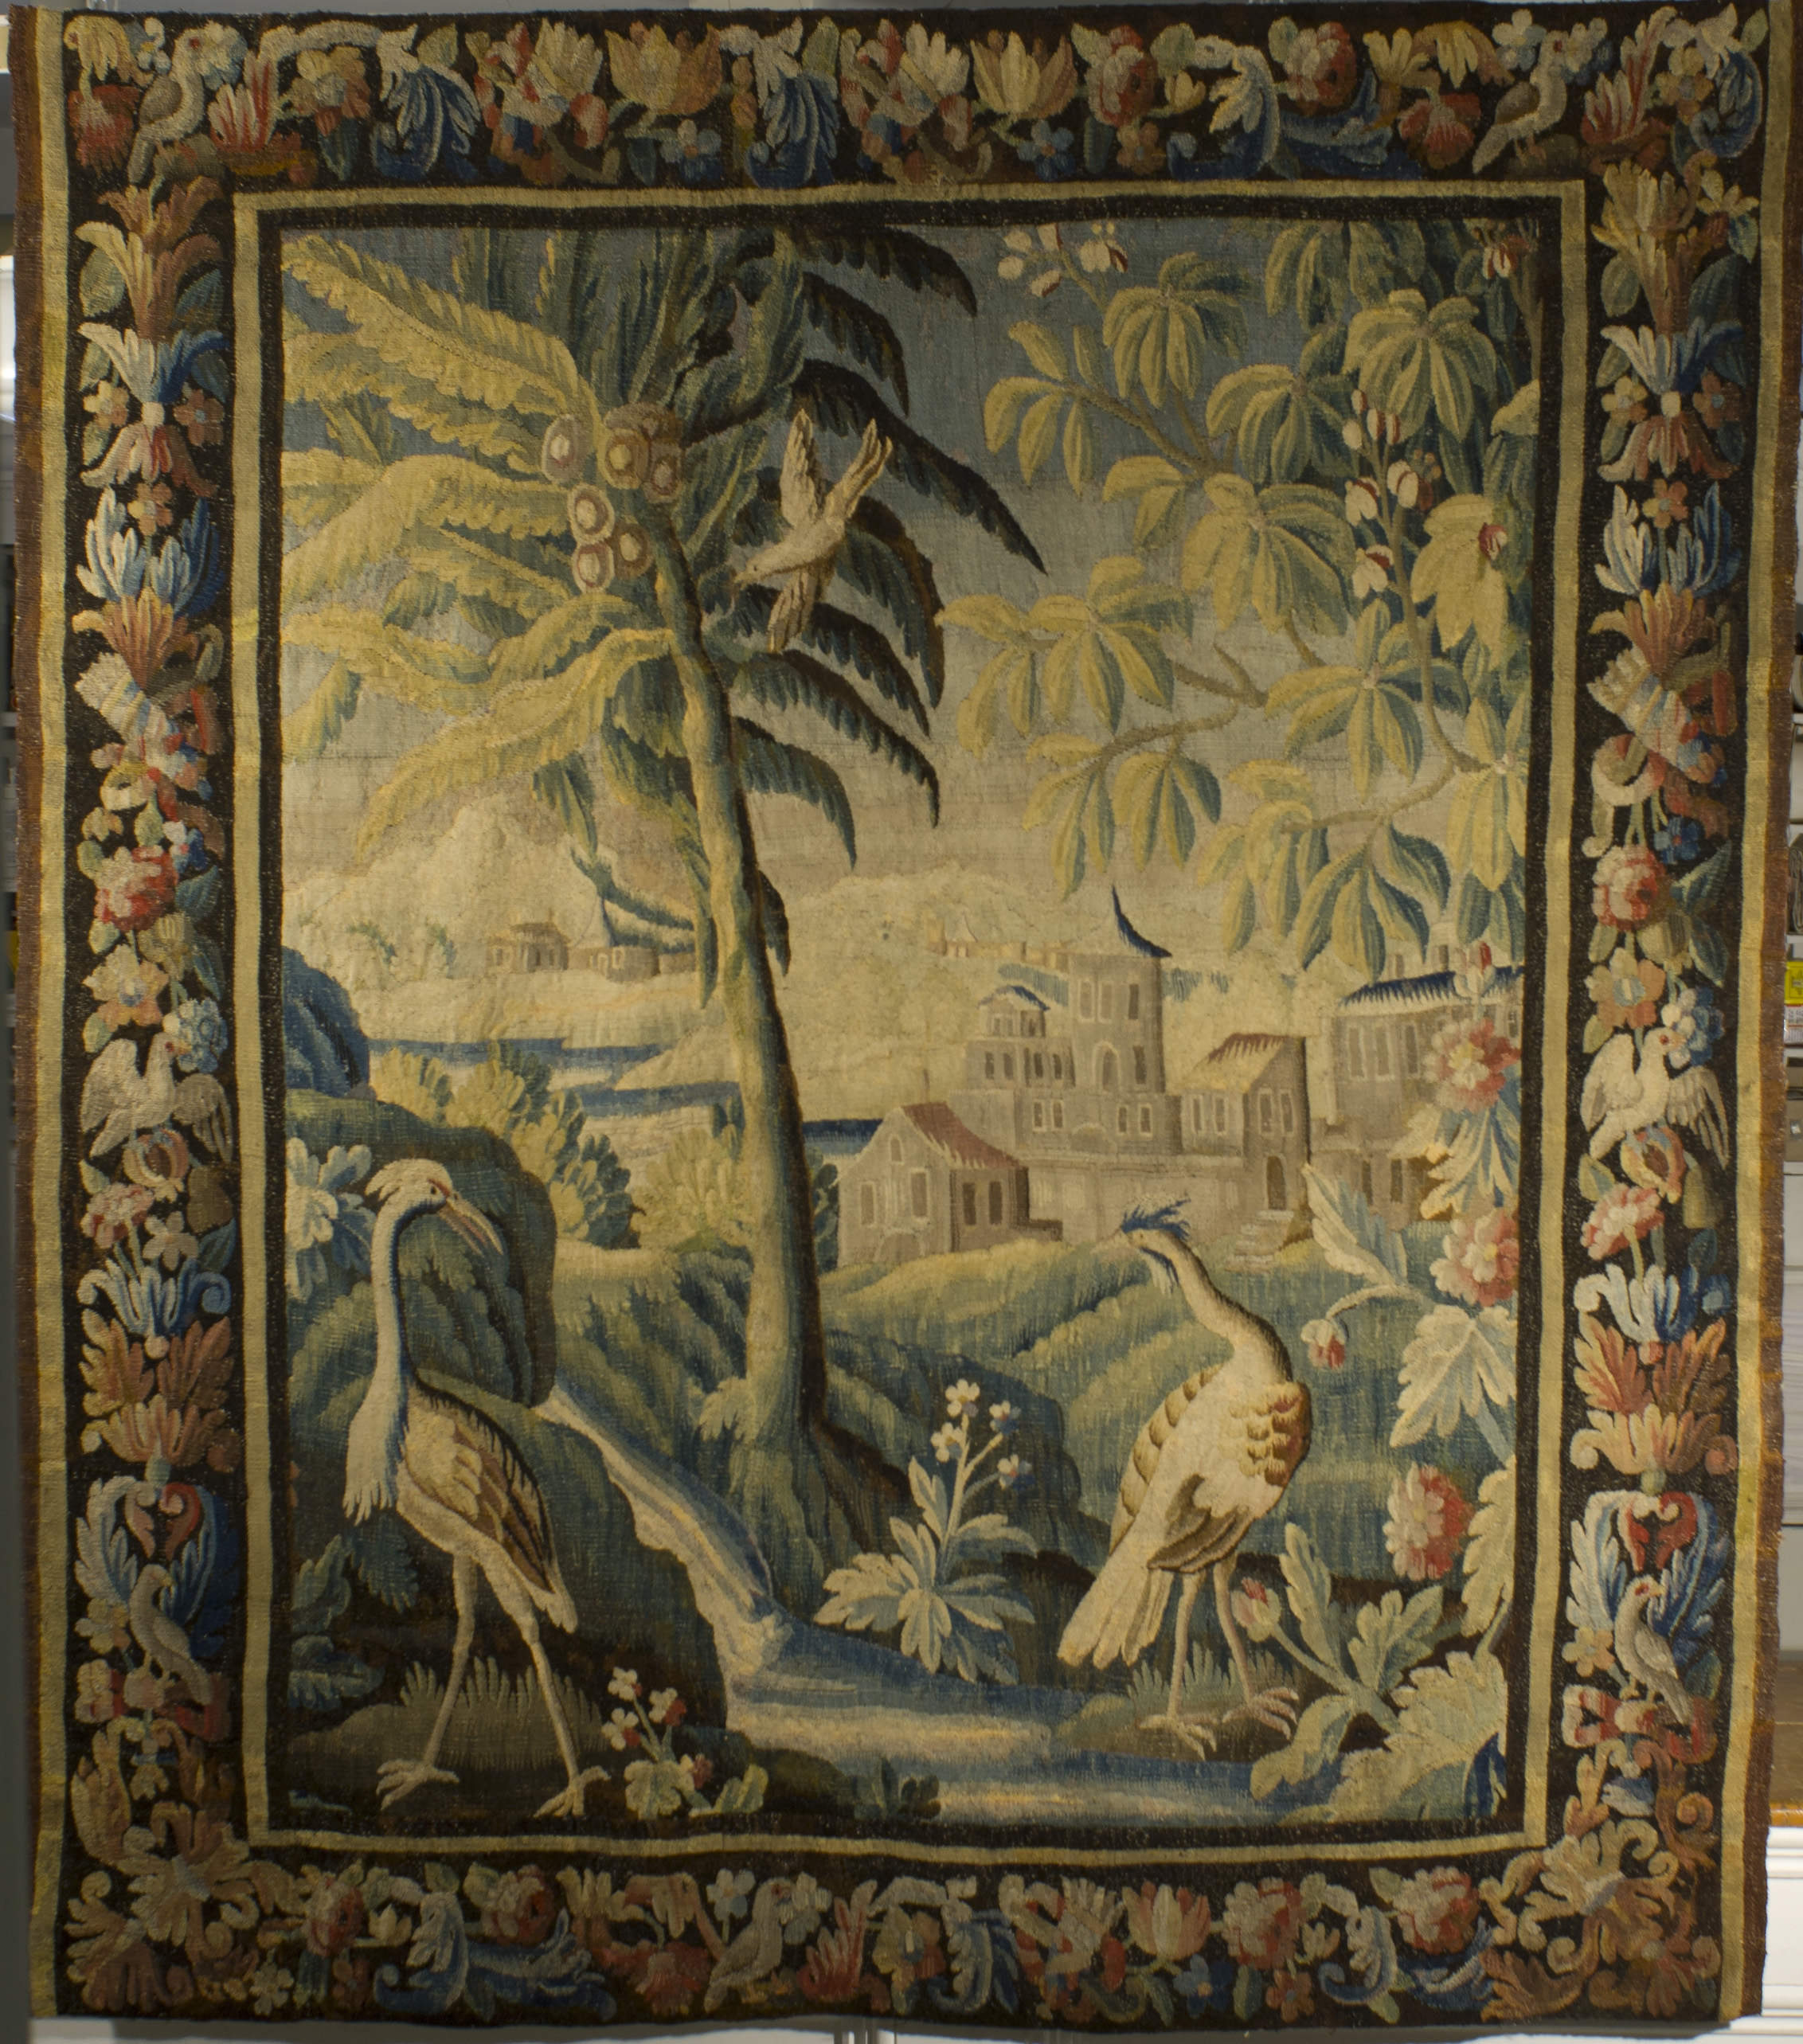 18th century tapestry conserved and prepared for hanging.